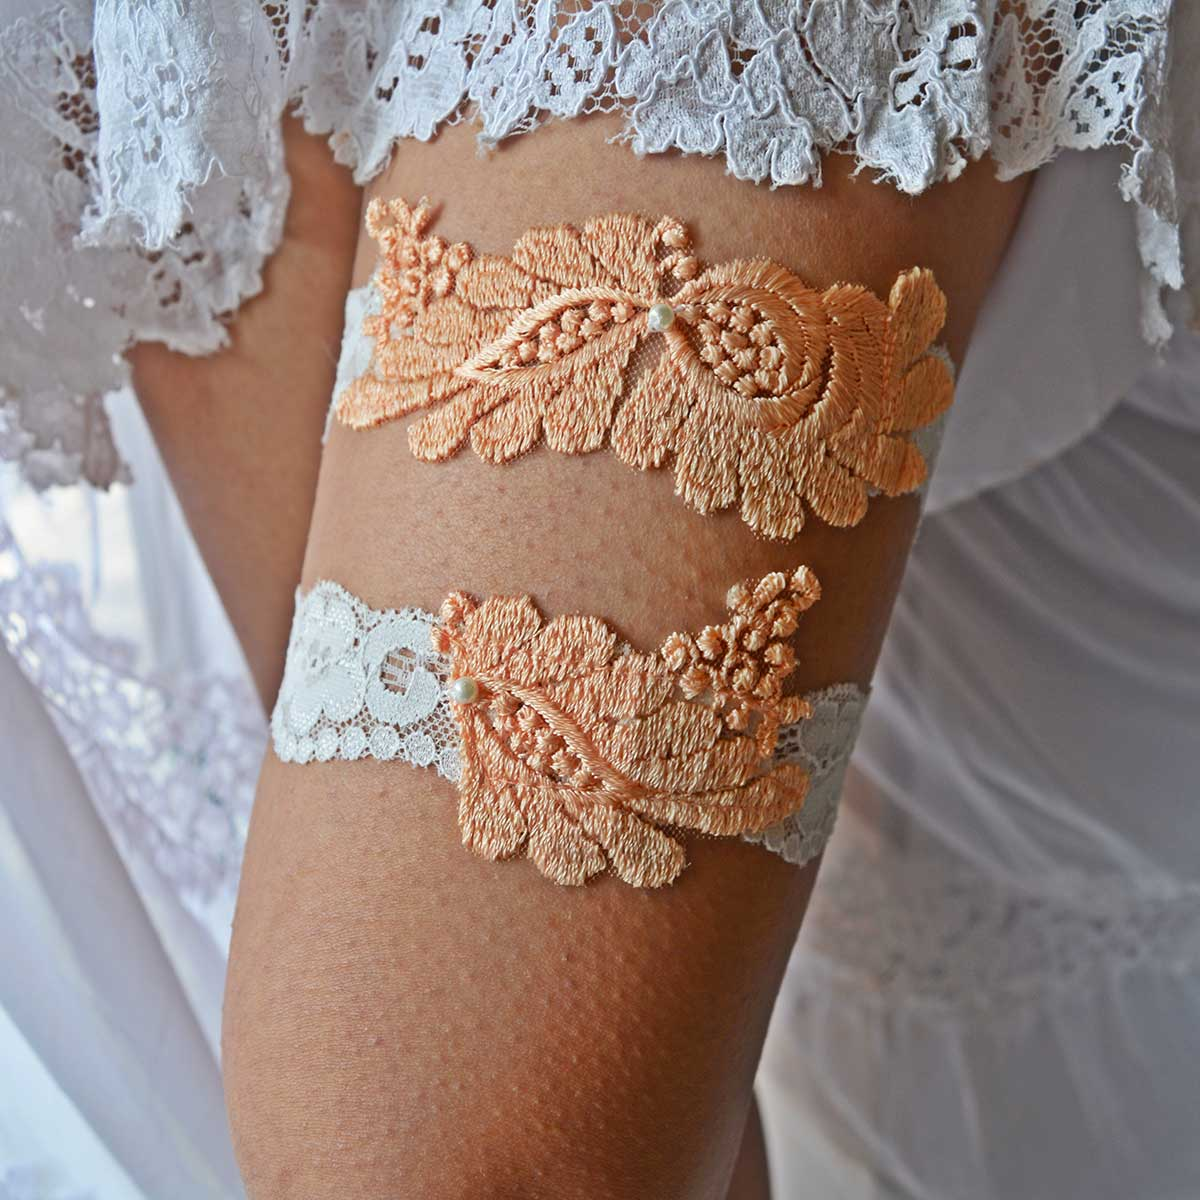 White Bridal Garter With Peach Applique Lace And Pearls - Wedding Garter - SuzannaM Designs